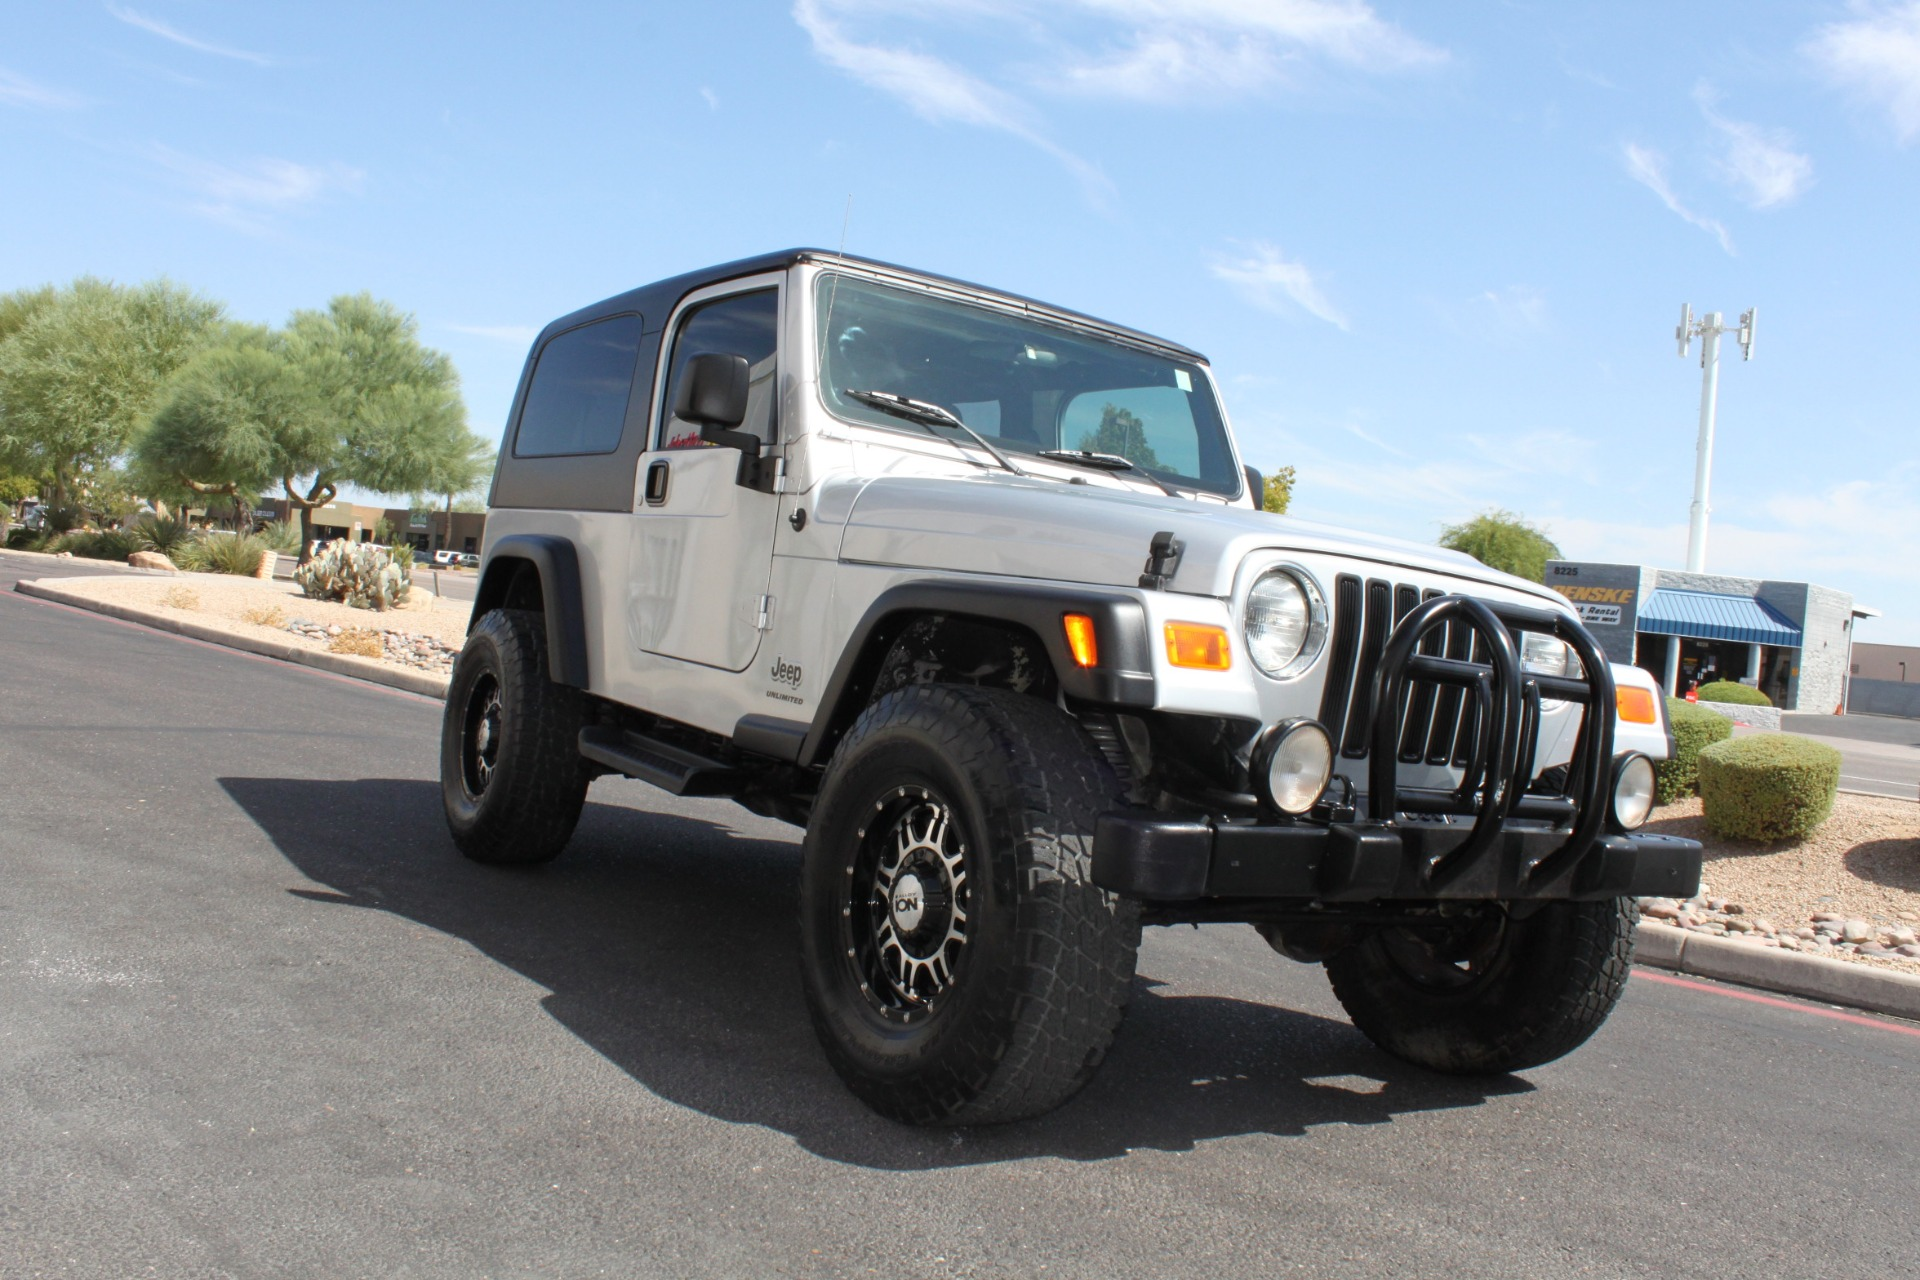 Used-2006-Jeep-Wrangler-Unlimited-LWB-Chalenger